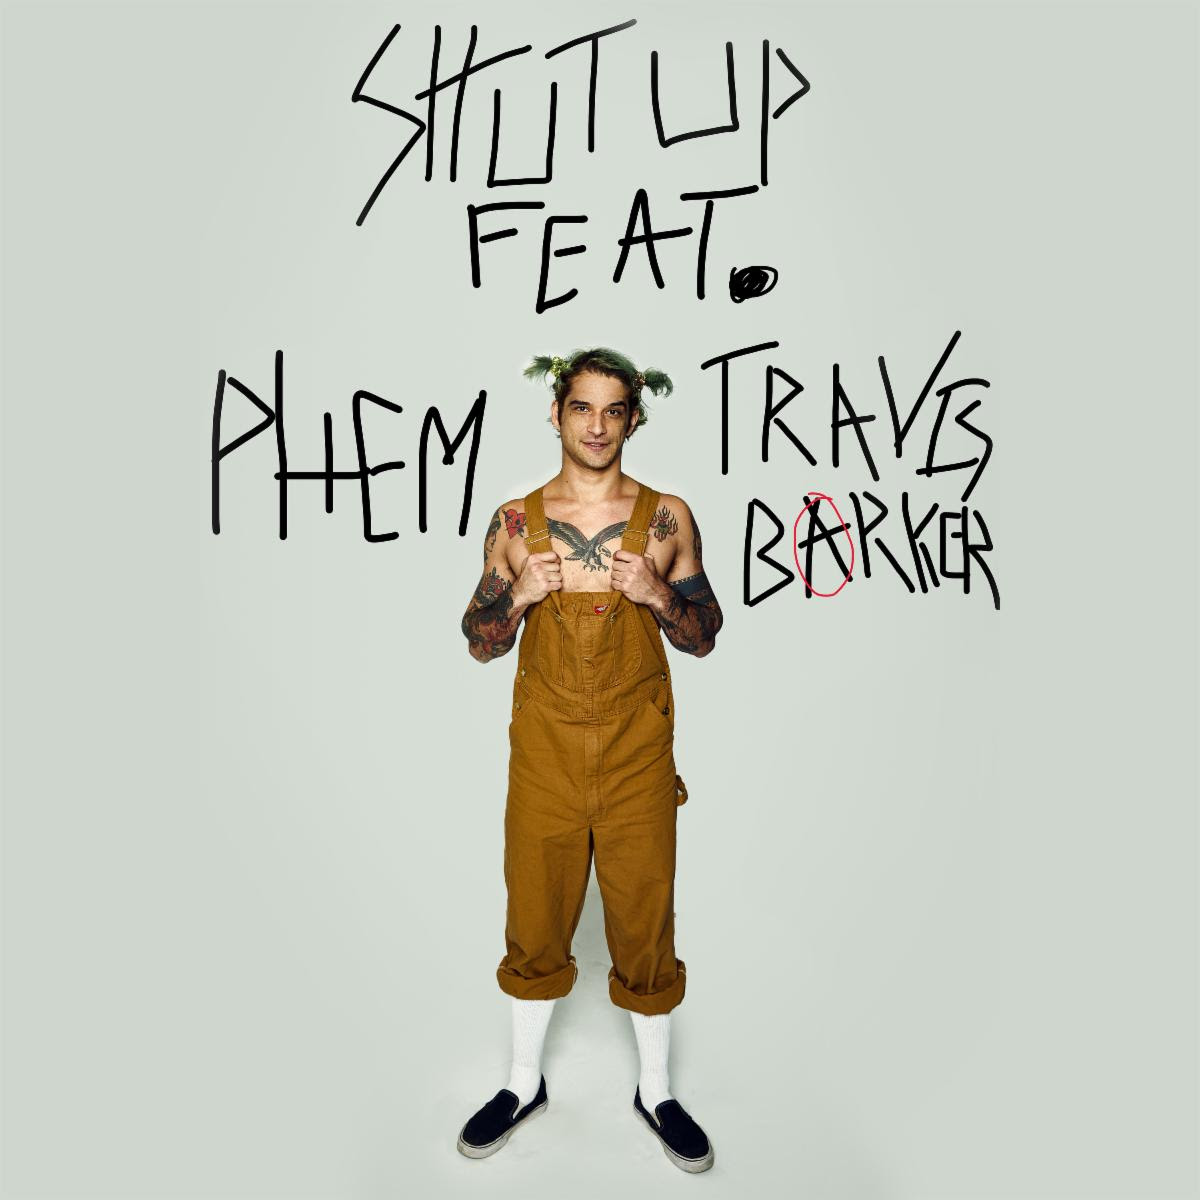 "Tyler Posey releases debut solo single ""Shut Up"" feat. phem, Travis Barker"